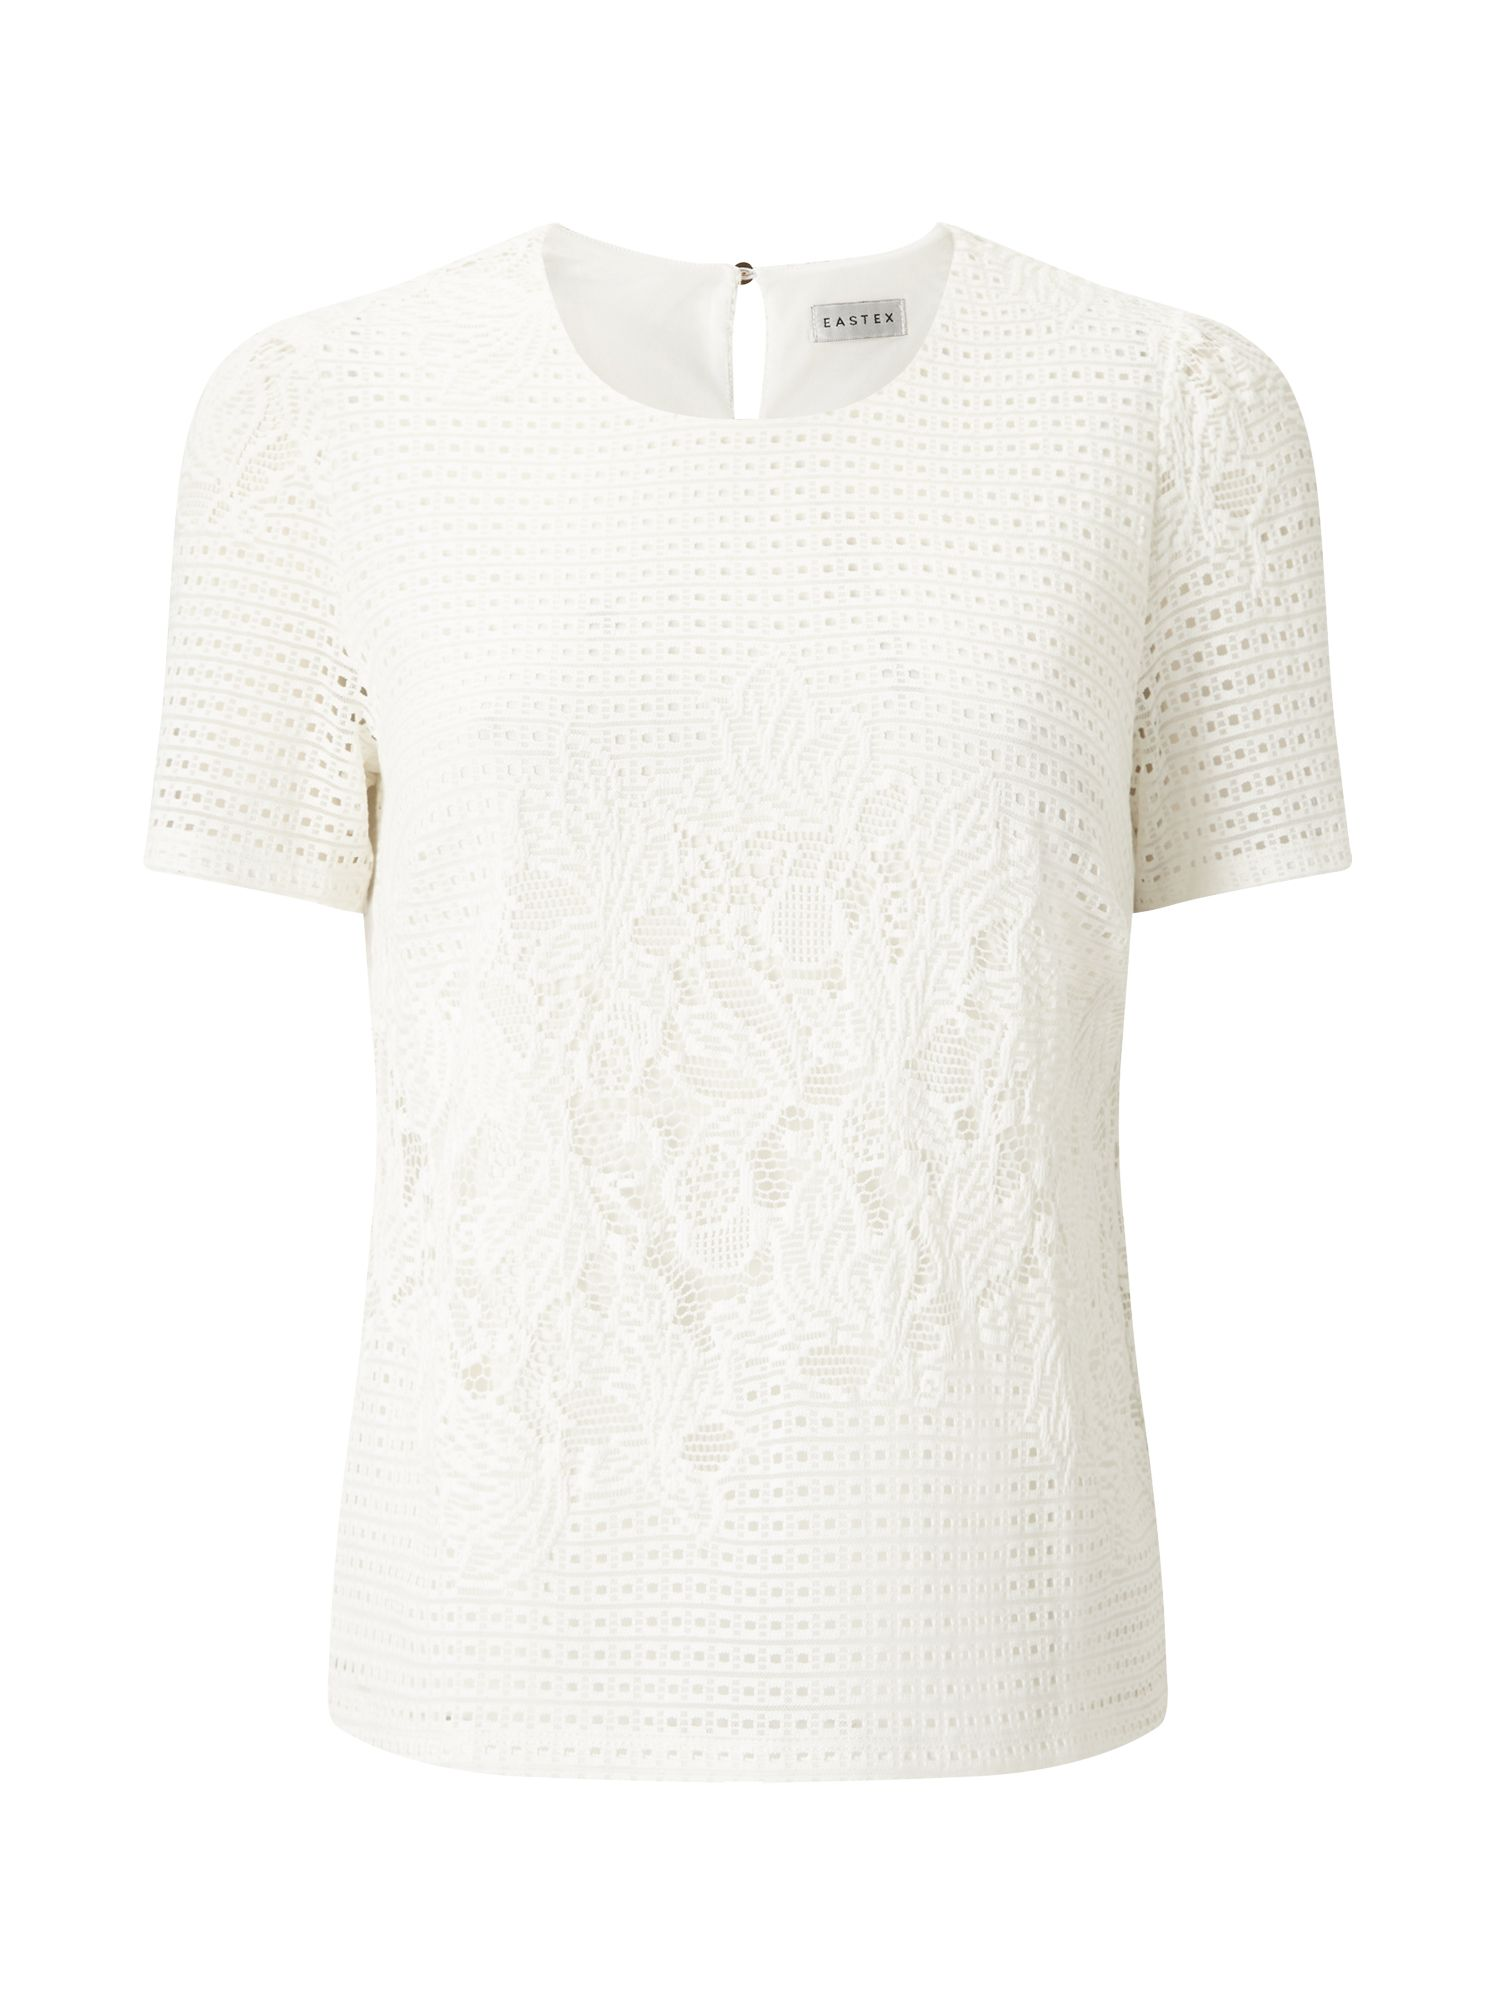 Eastex Geo Lace Ss Jersey Top, Neutral